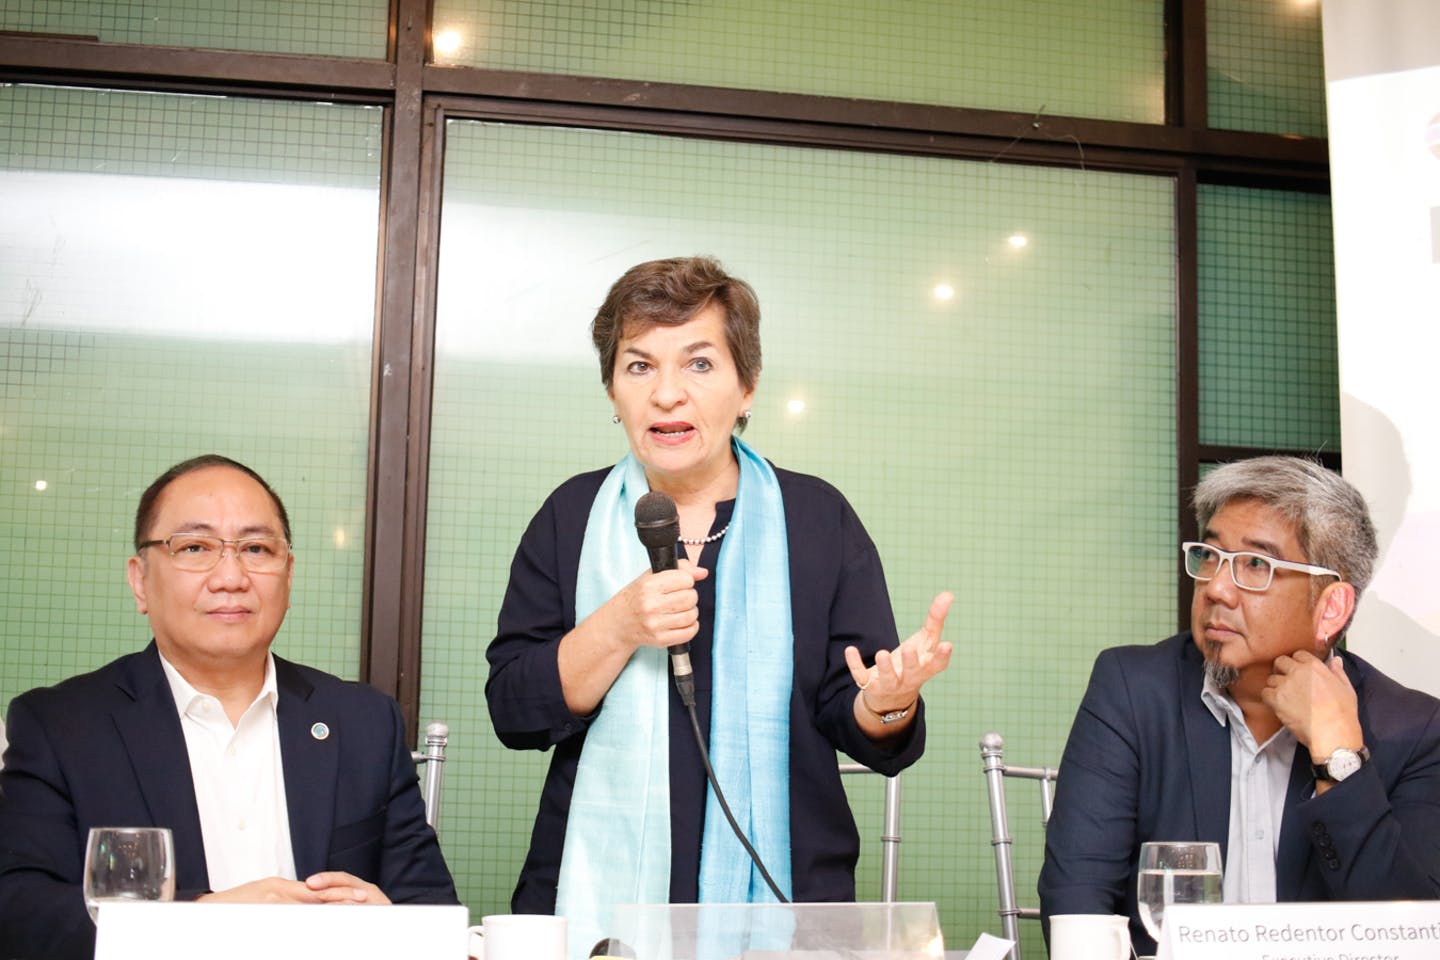 christiana figueres philippines